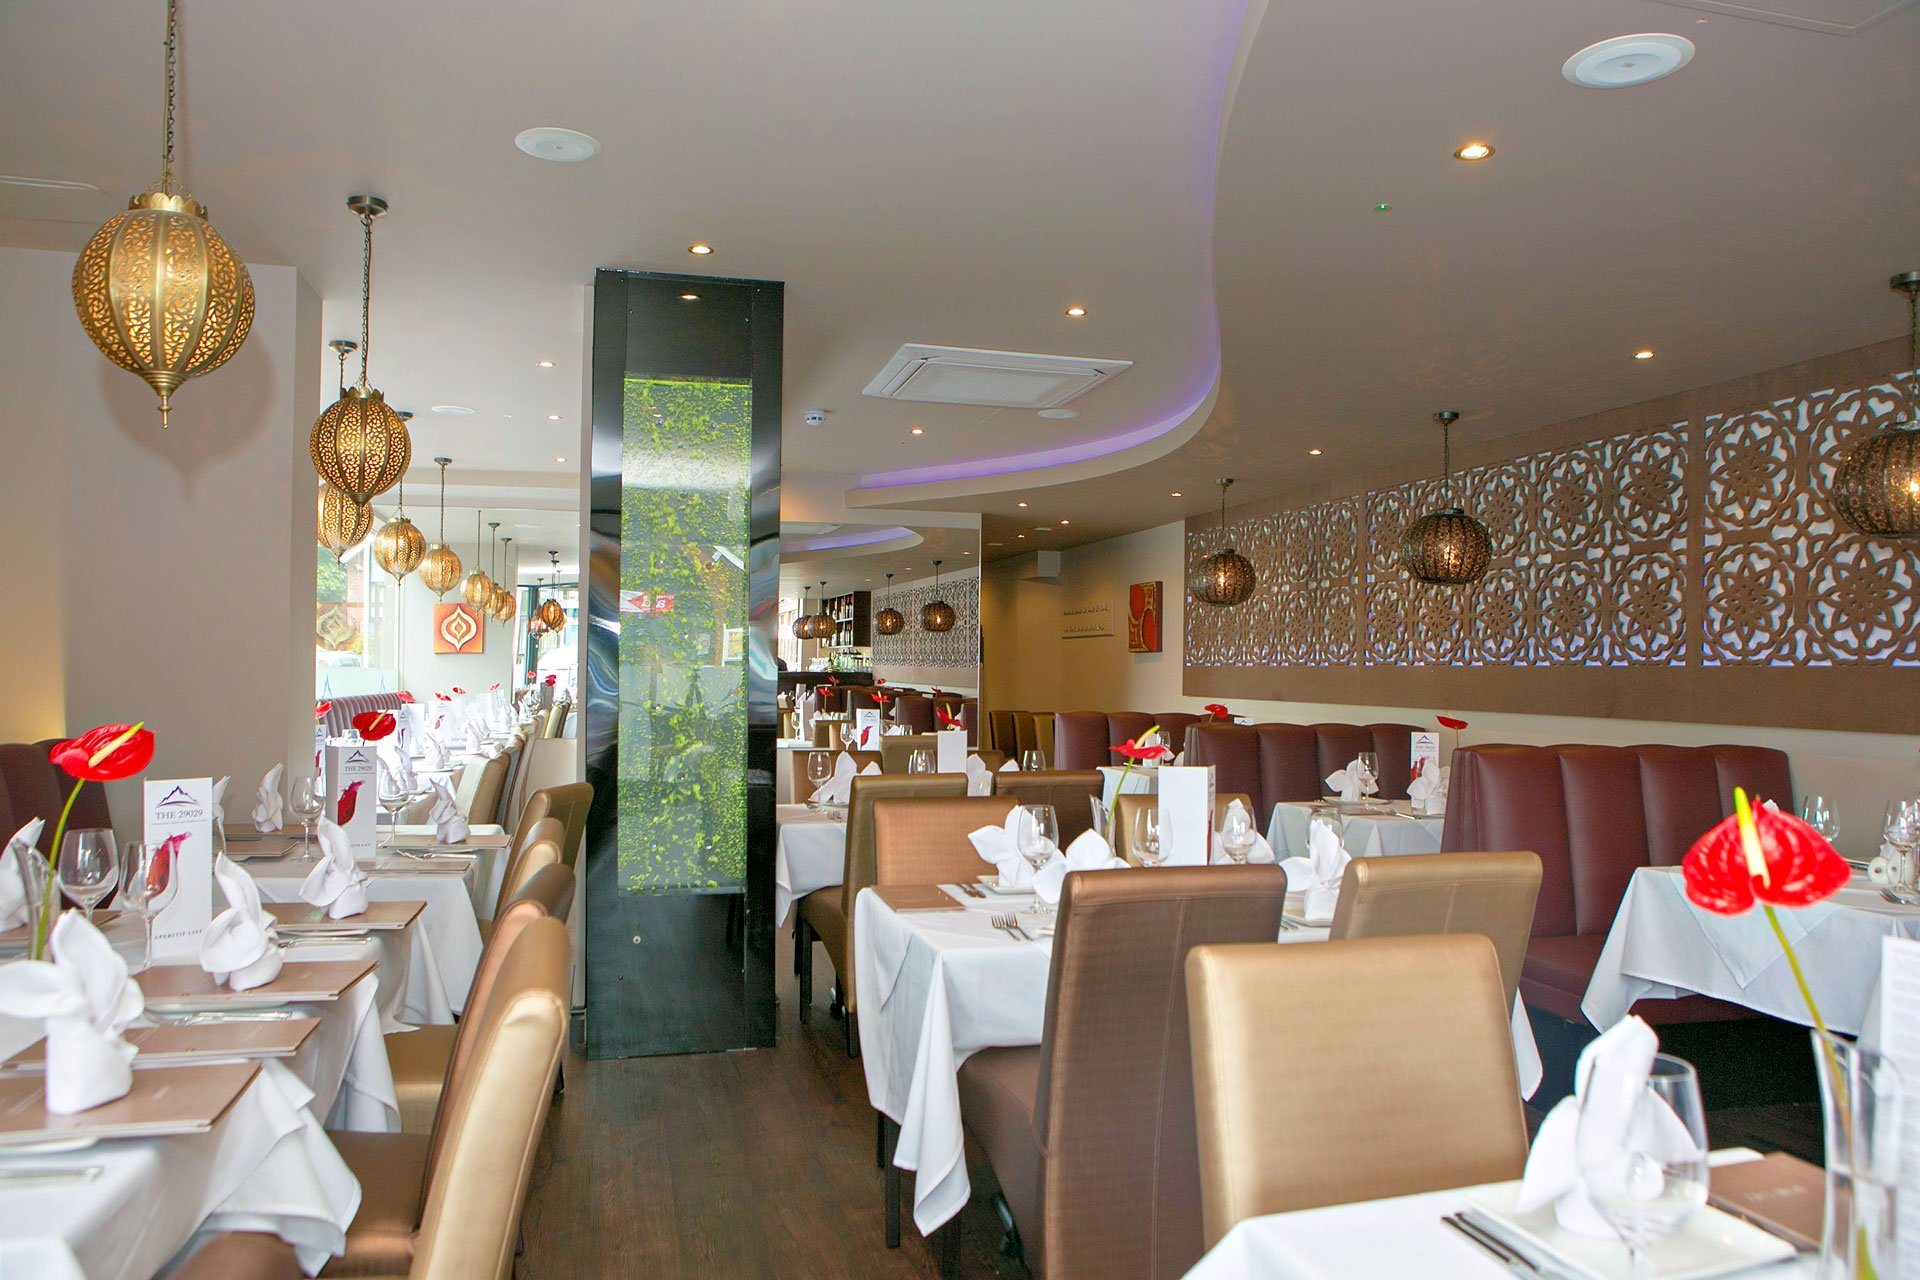 Lunch - The 29029 Restaurant Poole